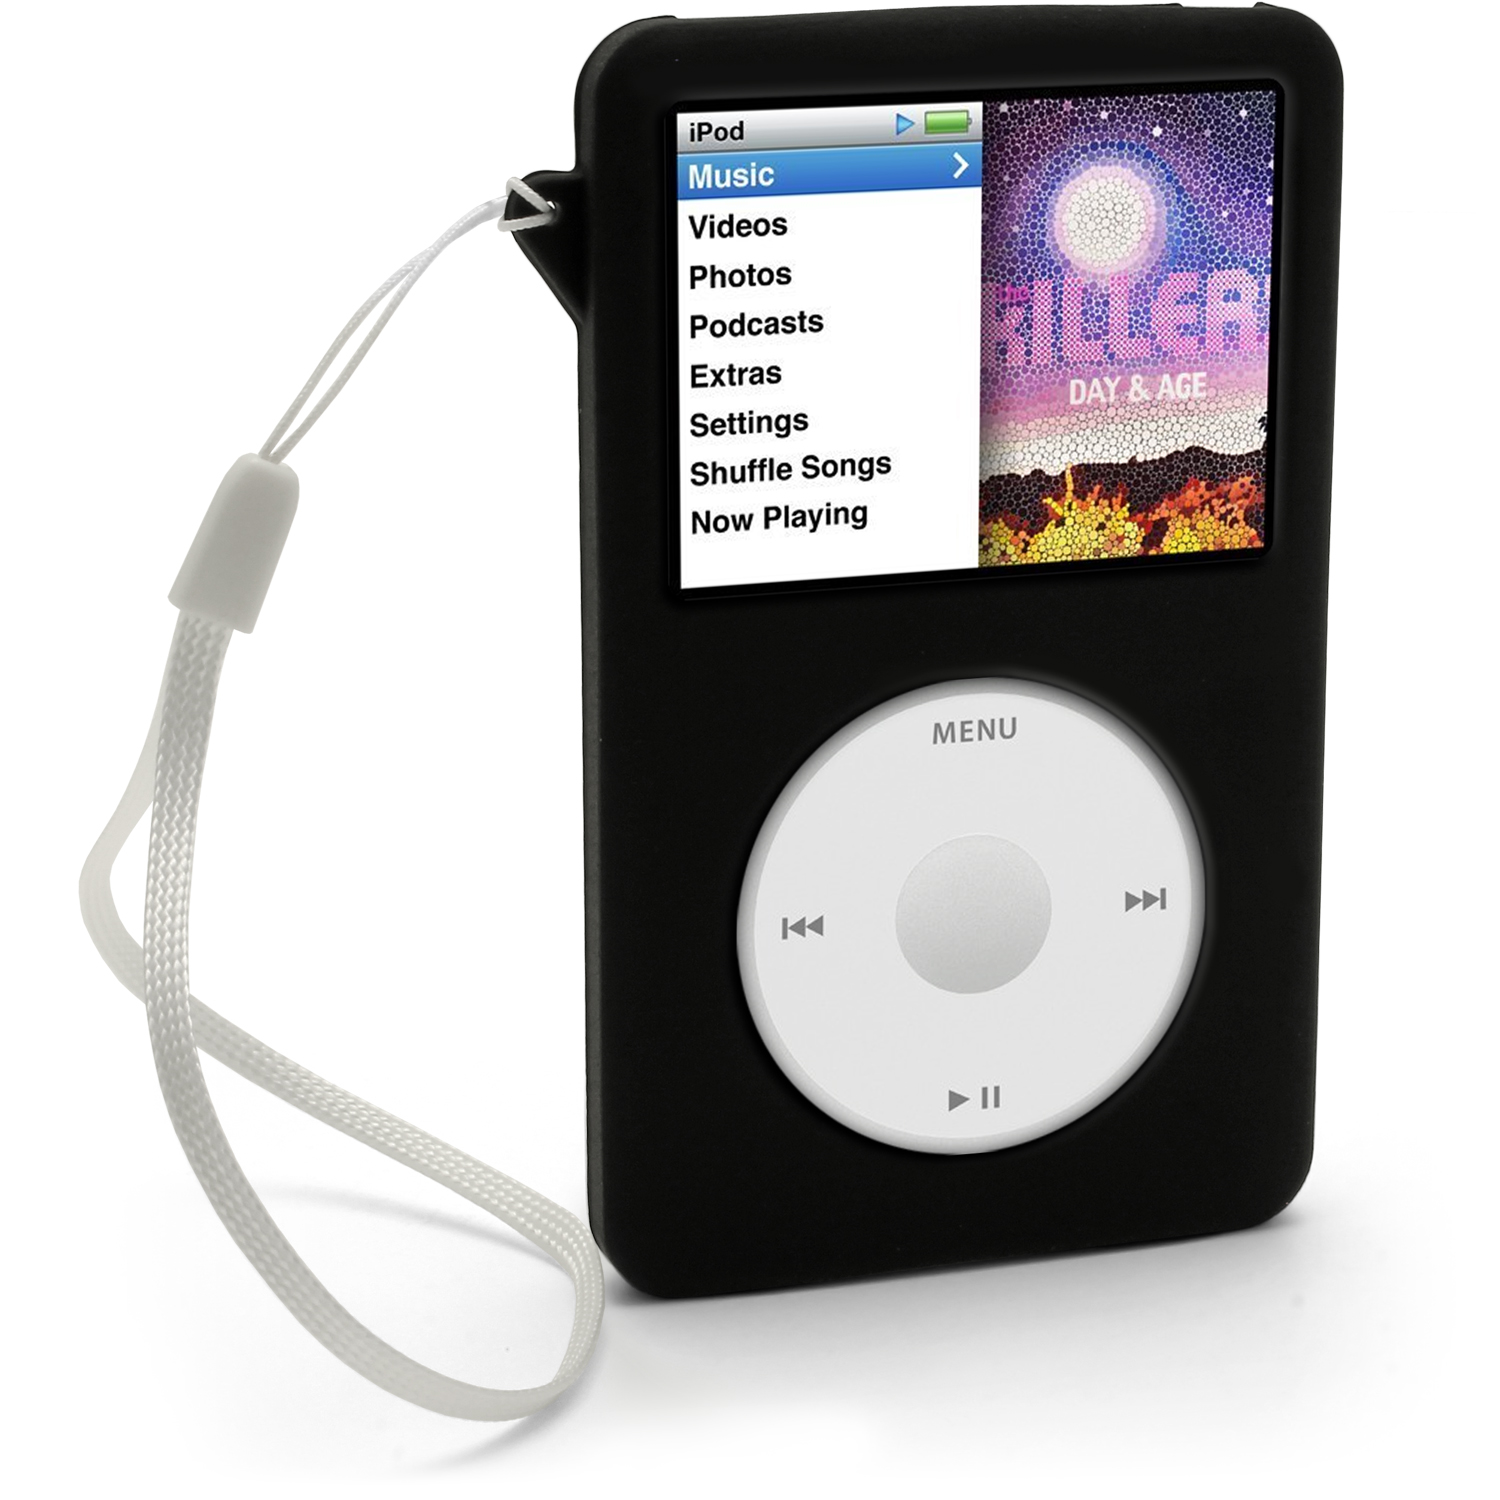 iGadgitz Black Silicone Skin Case for Apple iPod Classic 80gb, 120gb & latest 160gb + Screen Protector & Lanyard